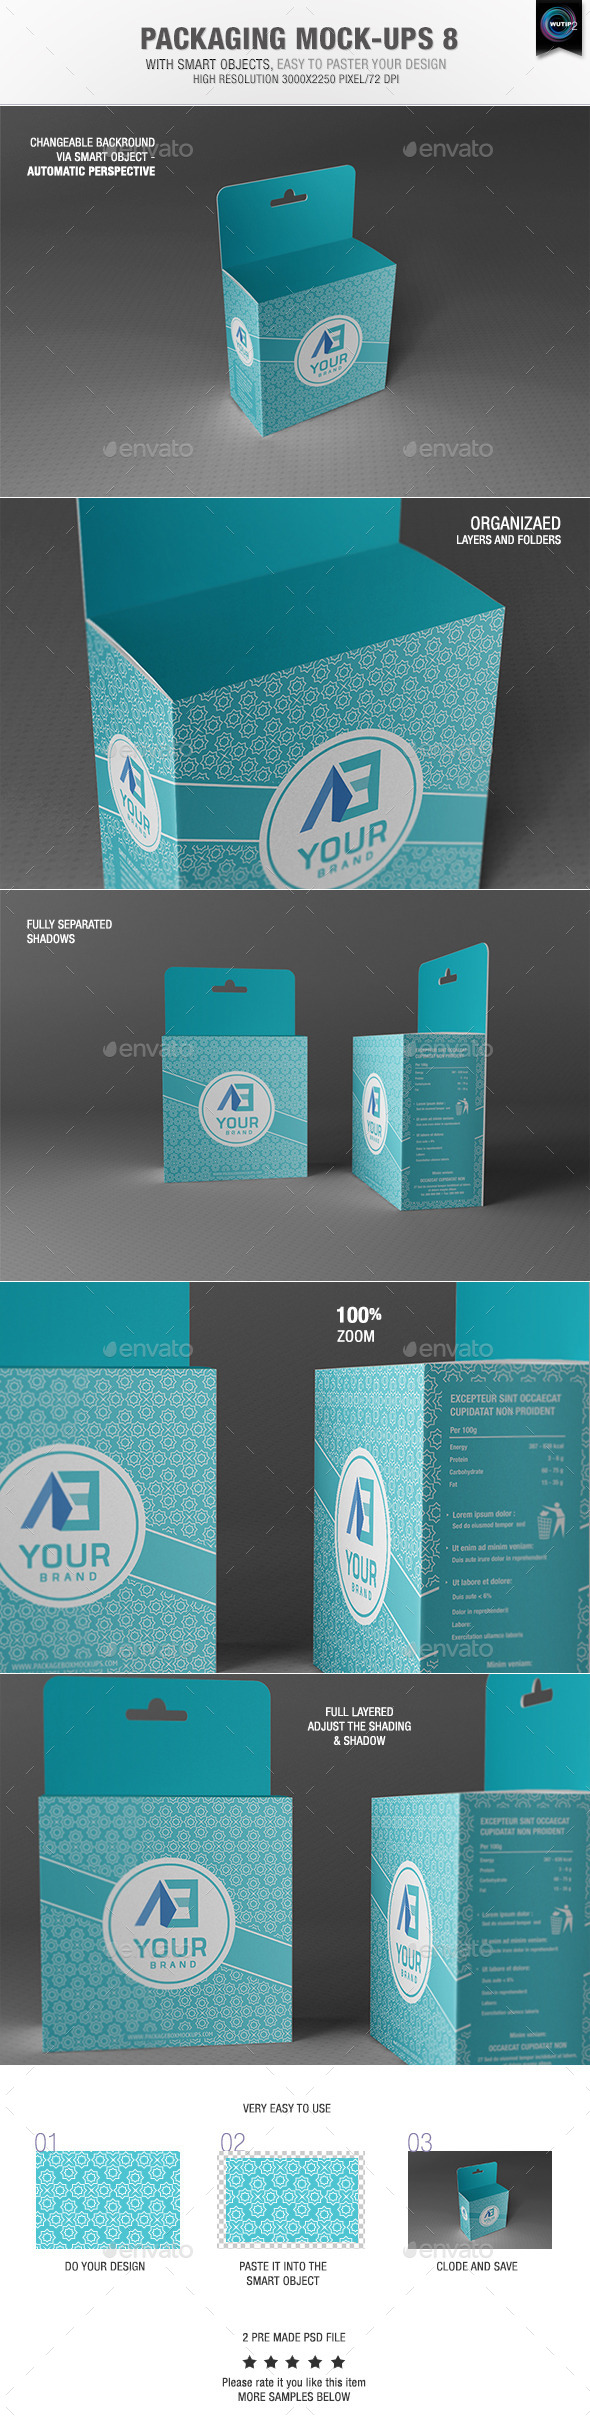 GraphicRiver Packaging Mock-Ups 8 9279019